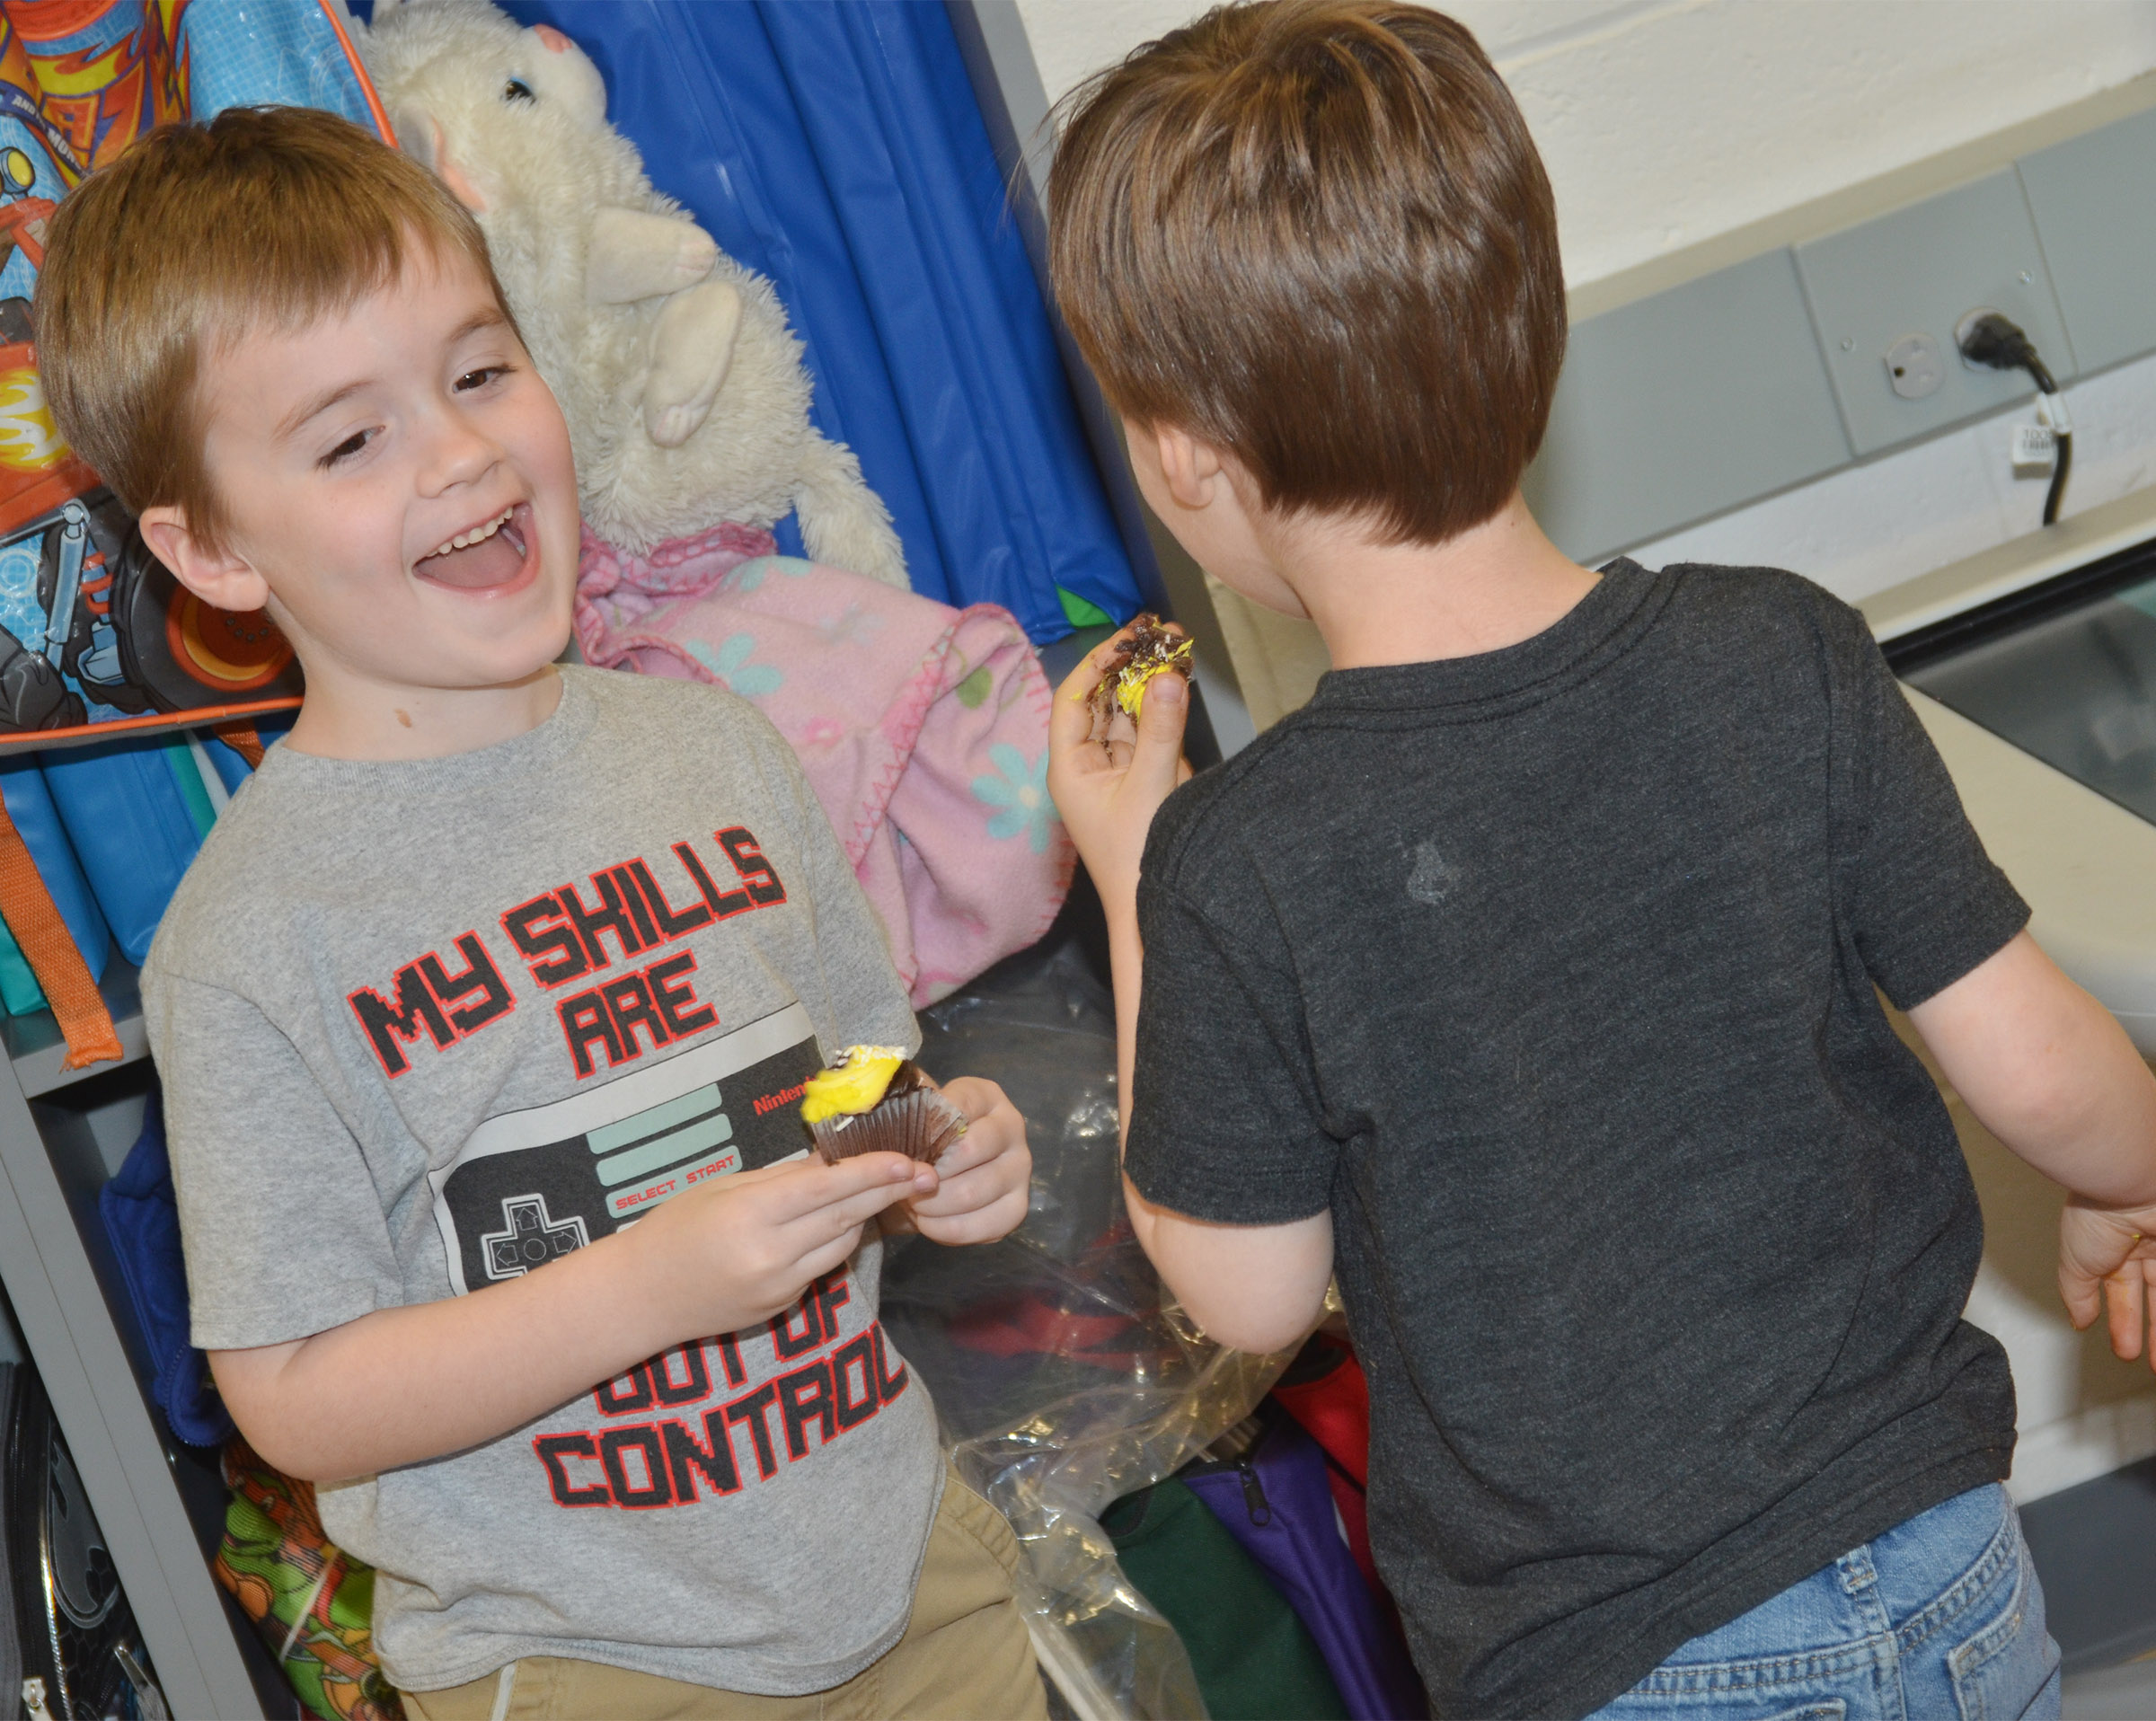 CES kindergartener Gavin Williams enjoys a birthday cupcake with his brother Finley, a preschool student.